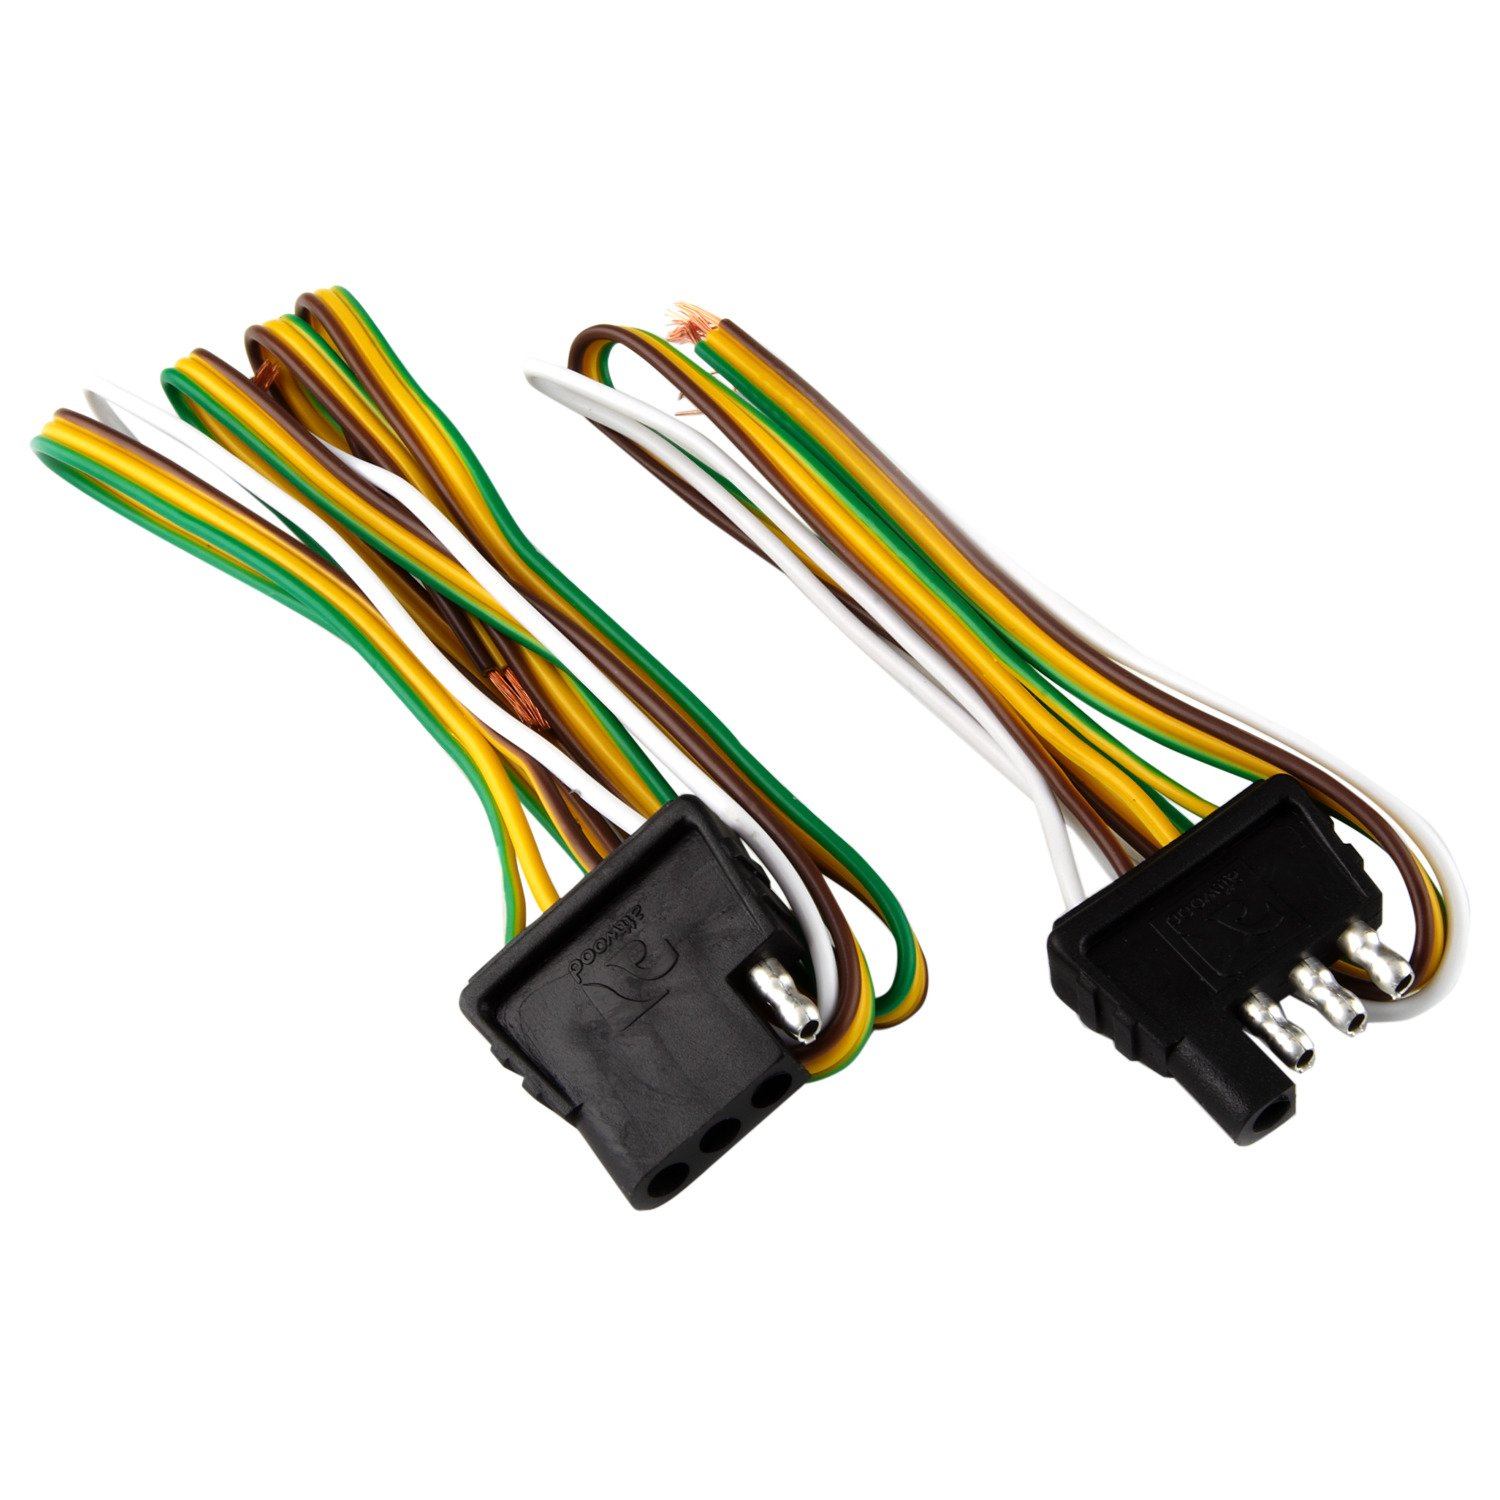 medium resolution of attwood 4 way flat wiring harness kit for vehicles and trailers 4 way wiring harness diagram 4 way wiring harness